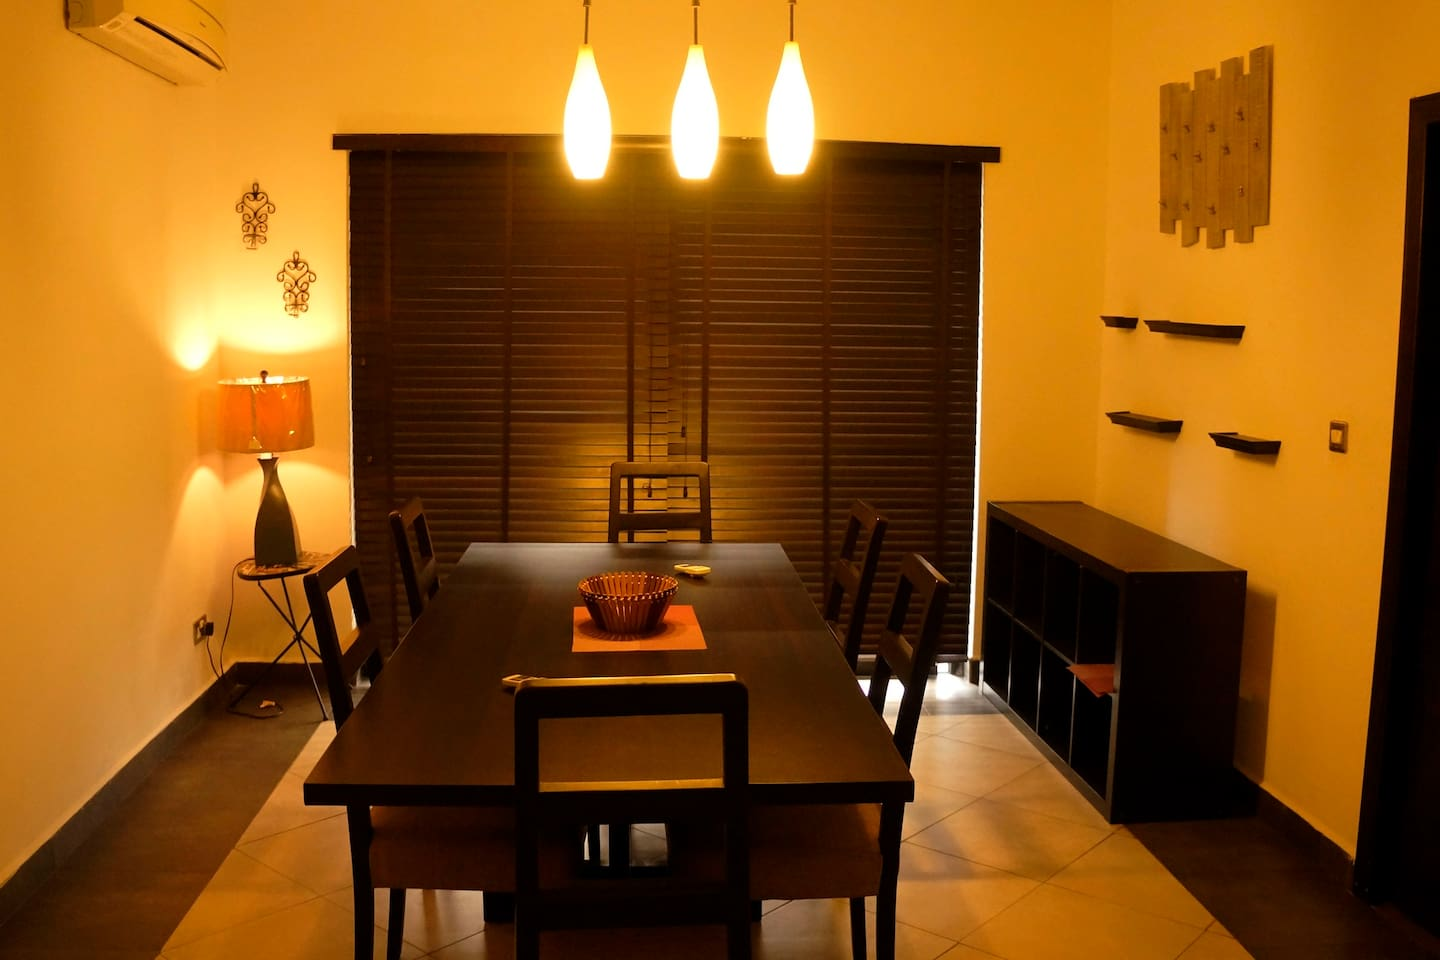 Warm lighting for dining table